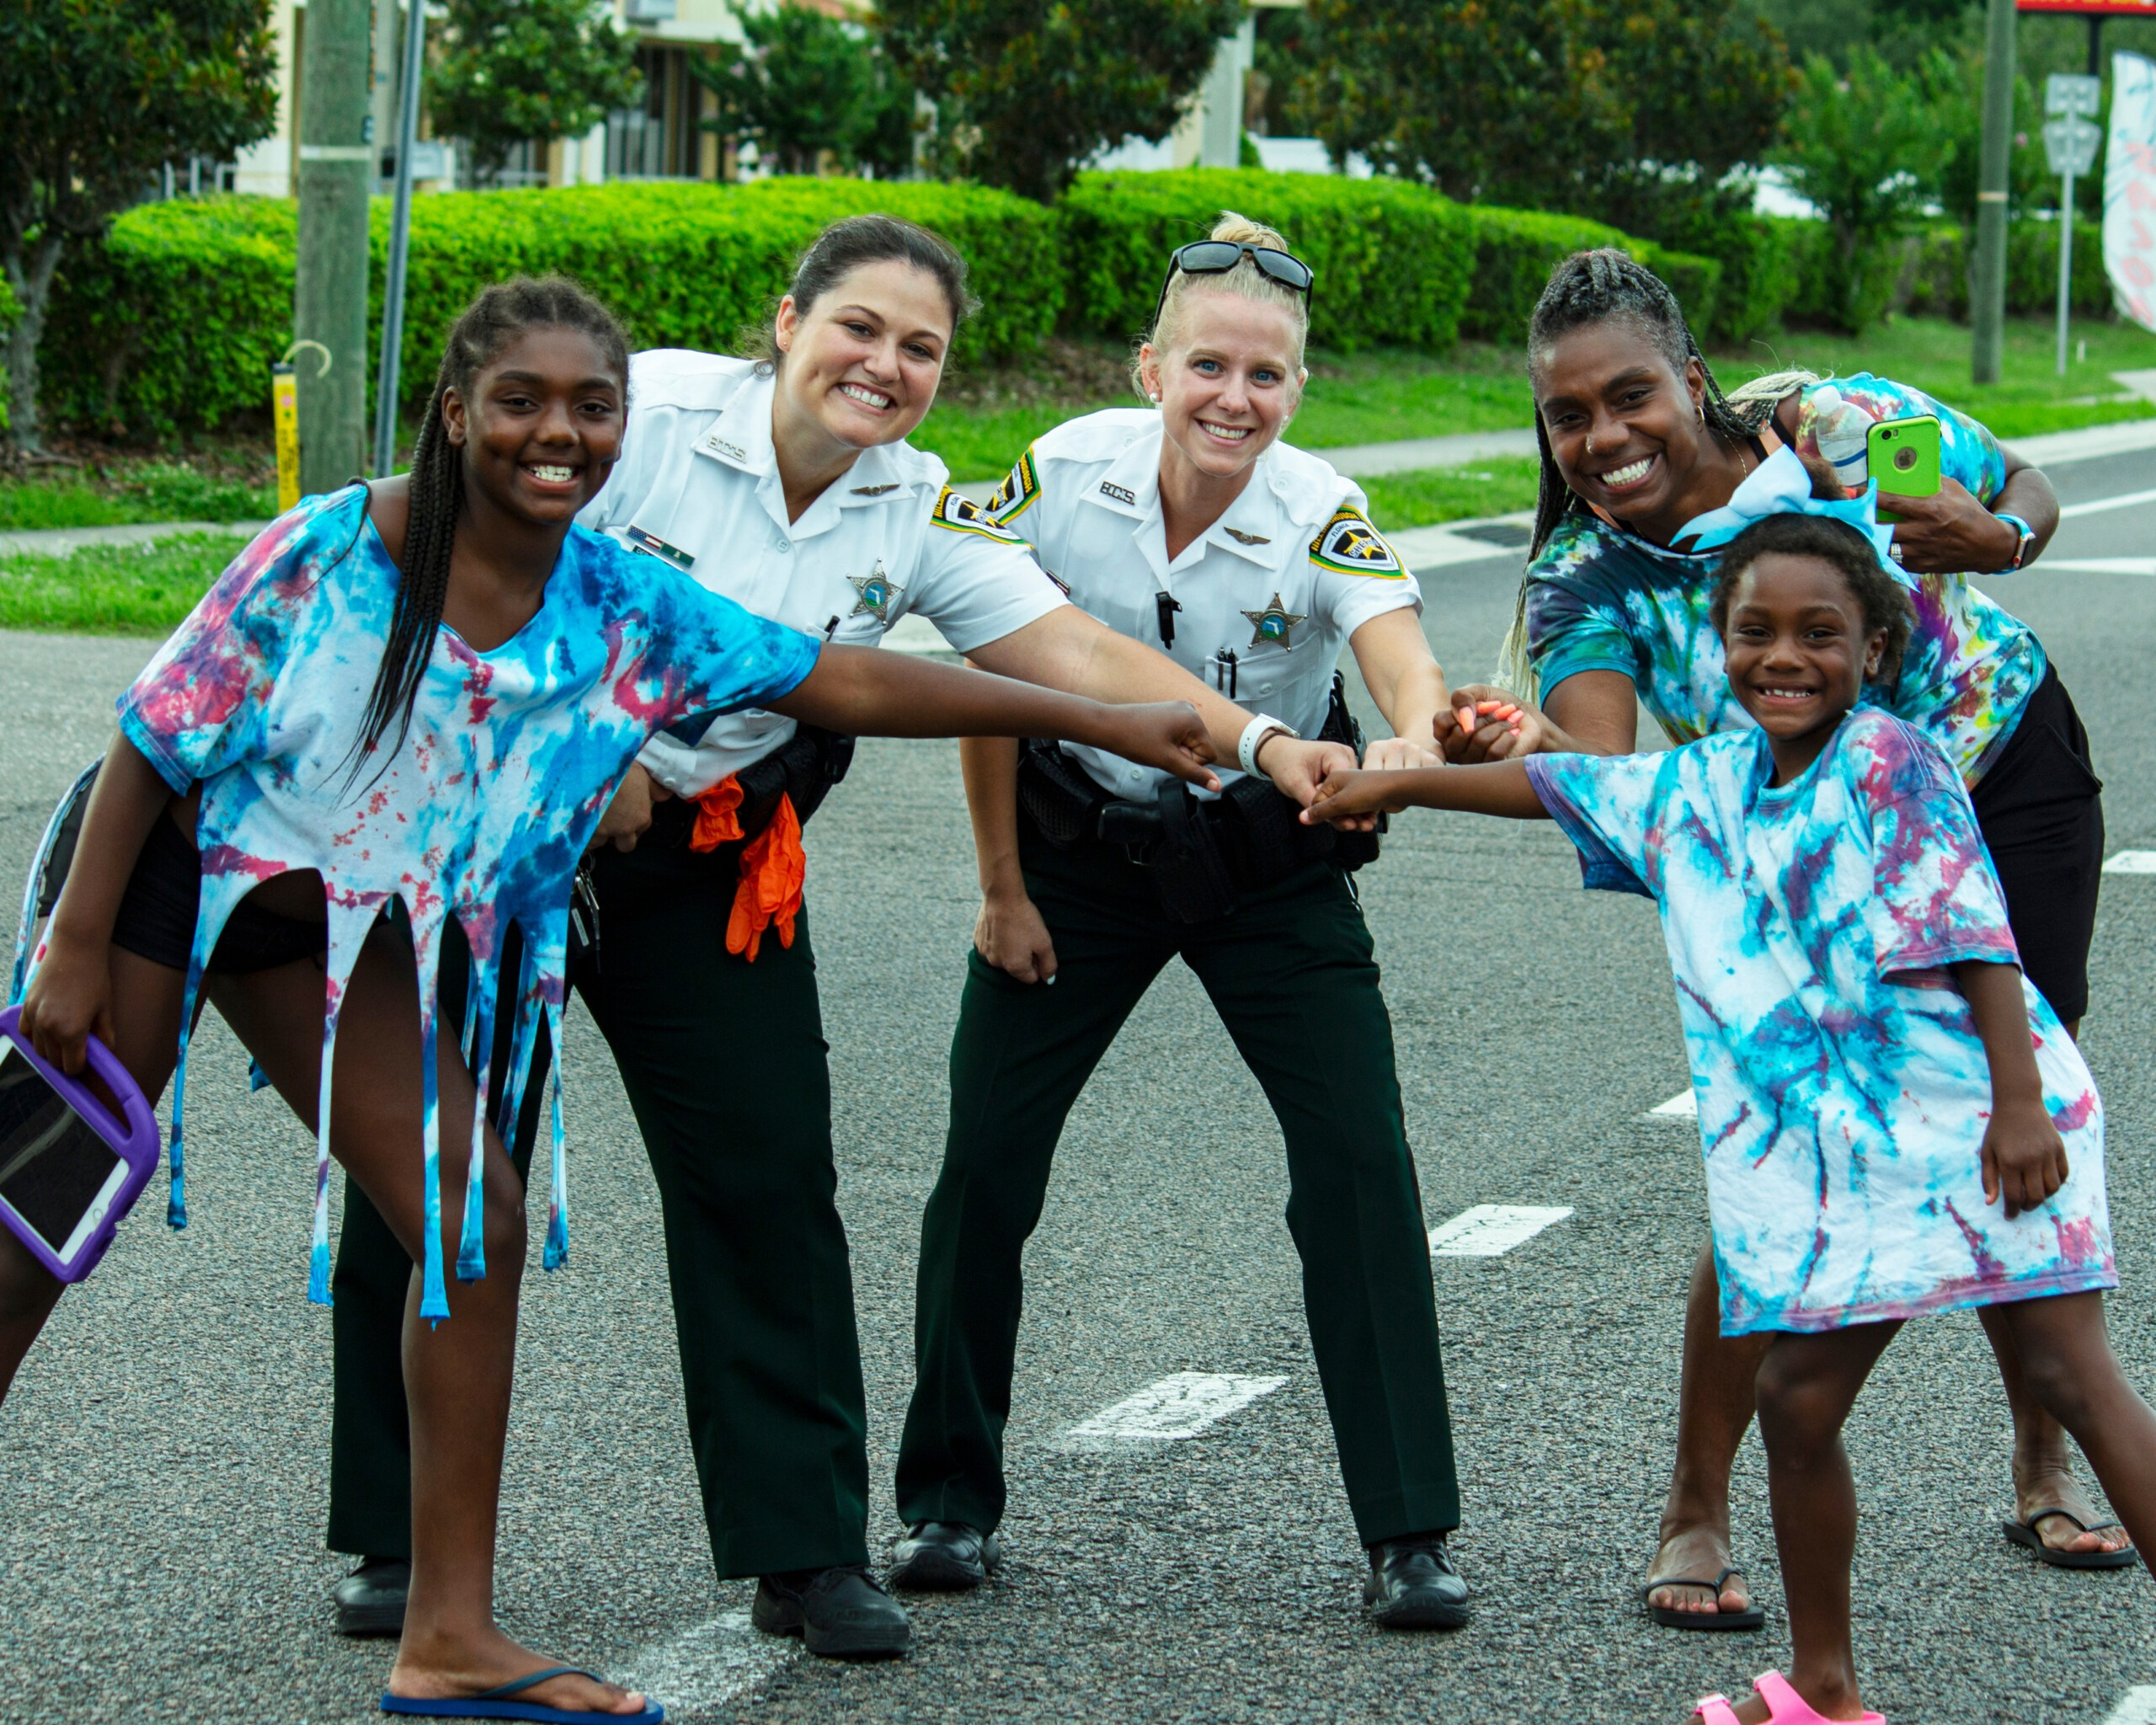 POC_Family_with_FL_Cop_1750619009_shutterstock